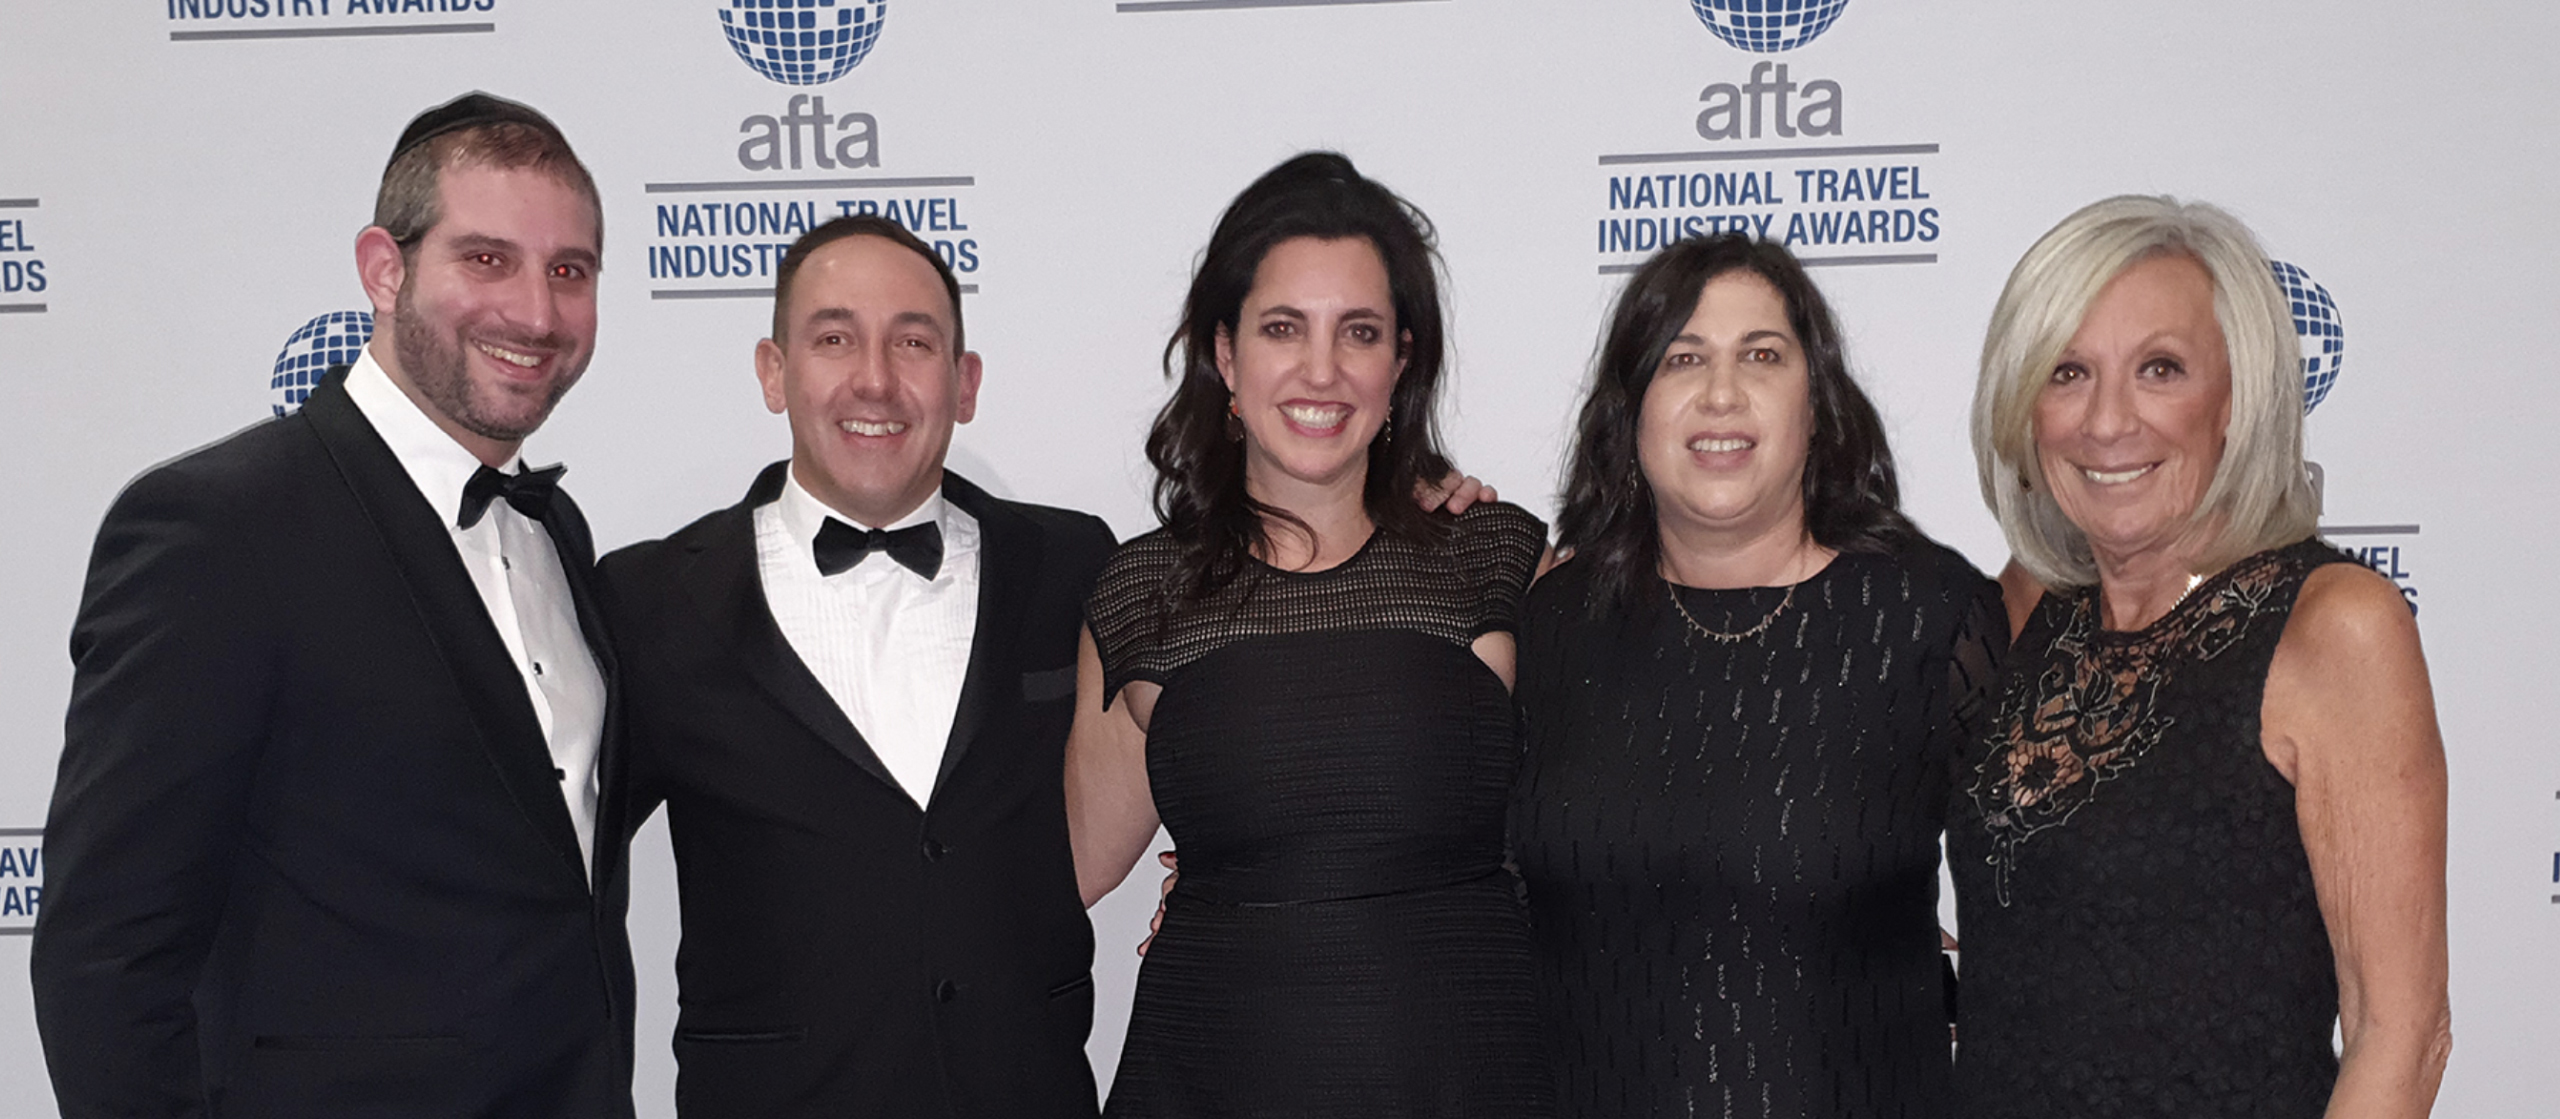 FBI Corporate Travel at the 2019 NTIA Awards